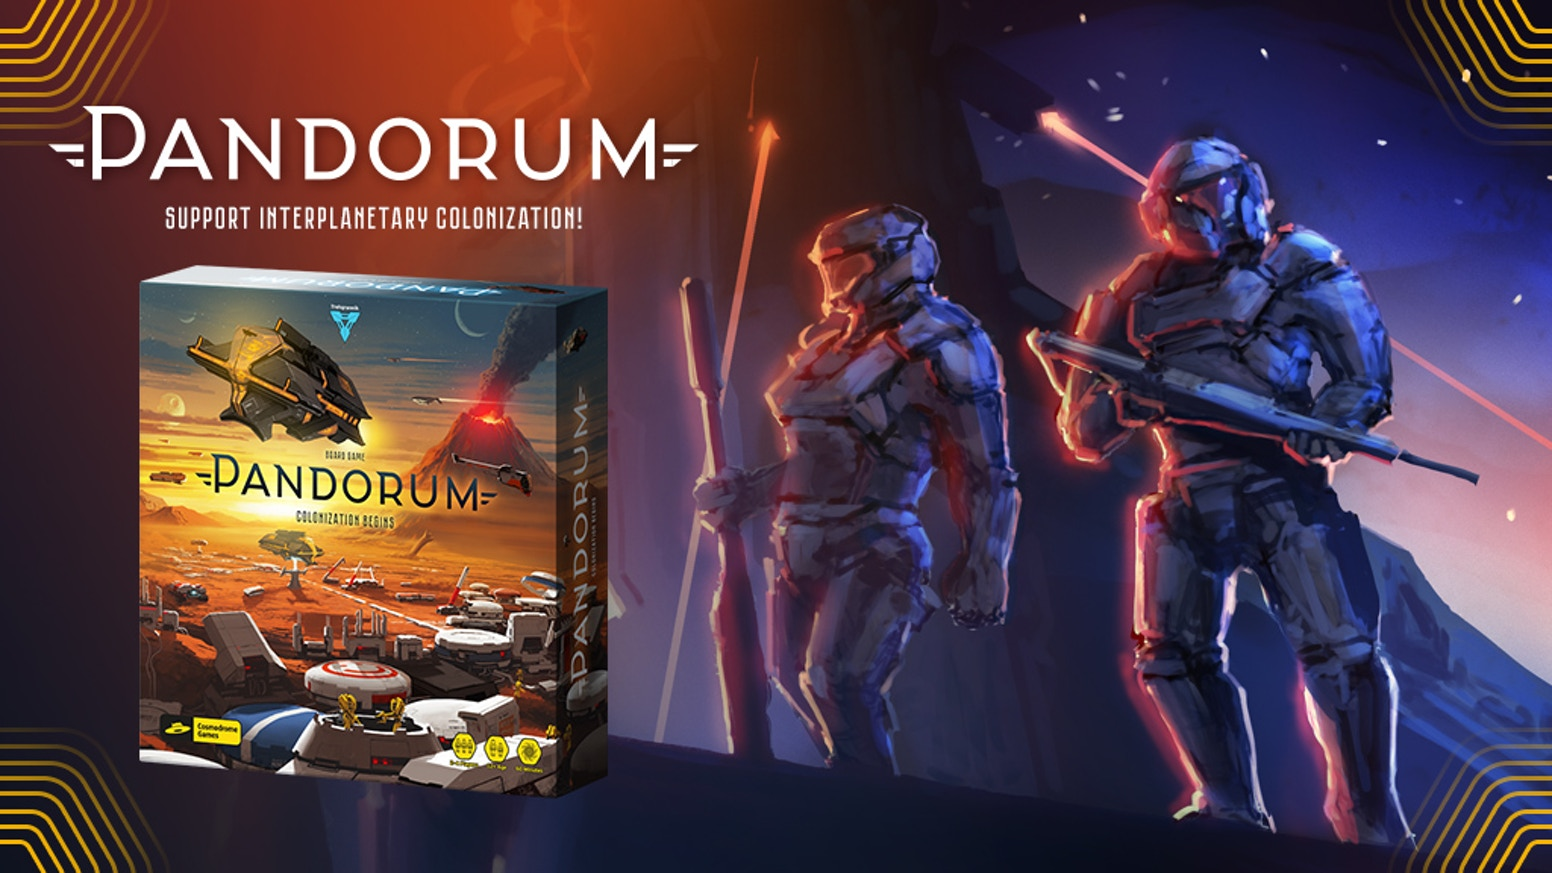 Pandorum is a cosmic strategic eurogame where you and your rivals colonize the lifeless but resource-rich planet;  for 1-4 players.